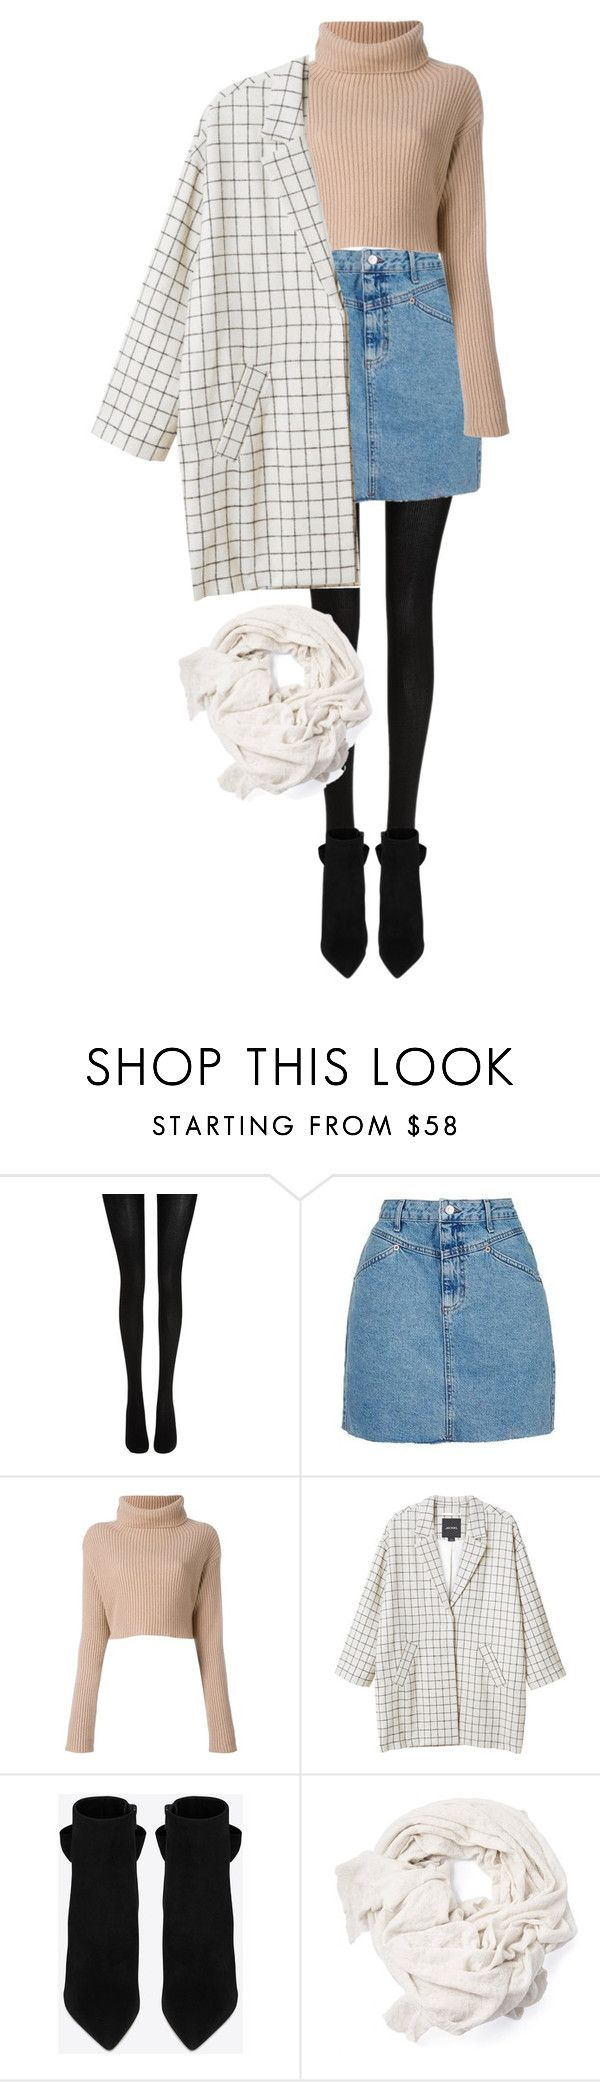 """""""Bez tytułu #227"""" by keluna ❤ liked on Polyvore featuring Wolford, Topshop, Valentino, Monki and Yves Saint Laurent"""